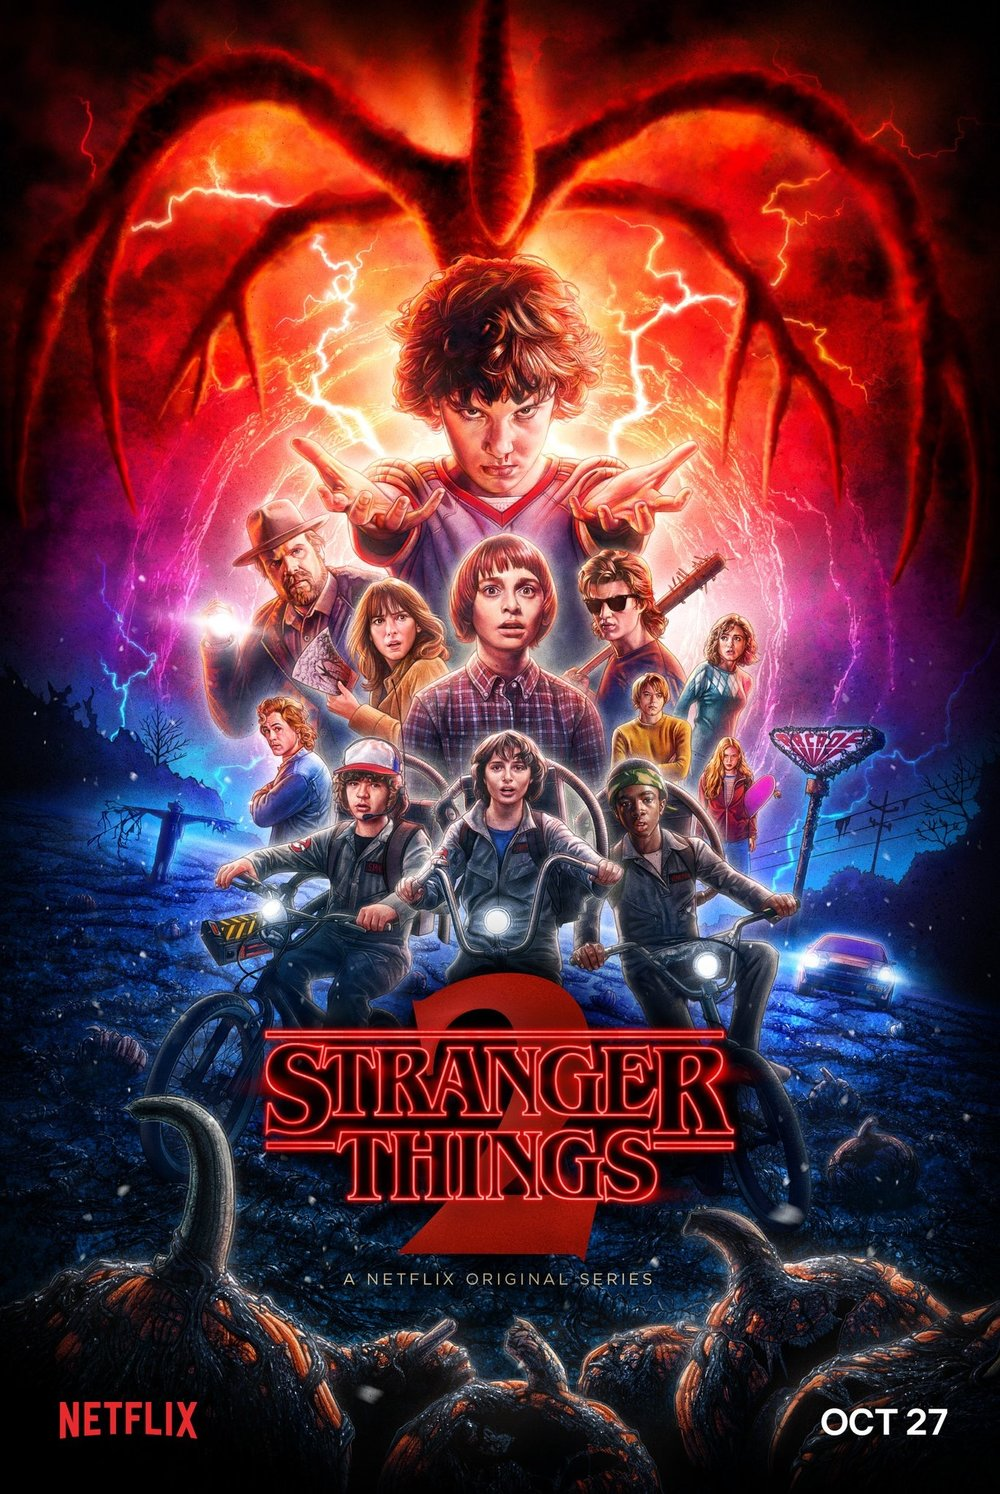 Stranger Things 2 Review - Spoiler Alert: Stranger Things Season 2 is everything we've been anticipating. Read our review, before our after, you binge watch the season on Netflix.